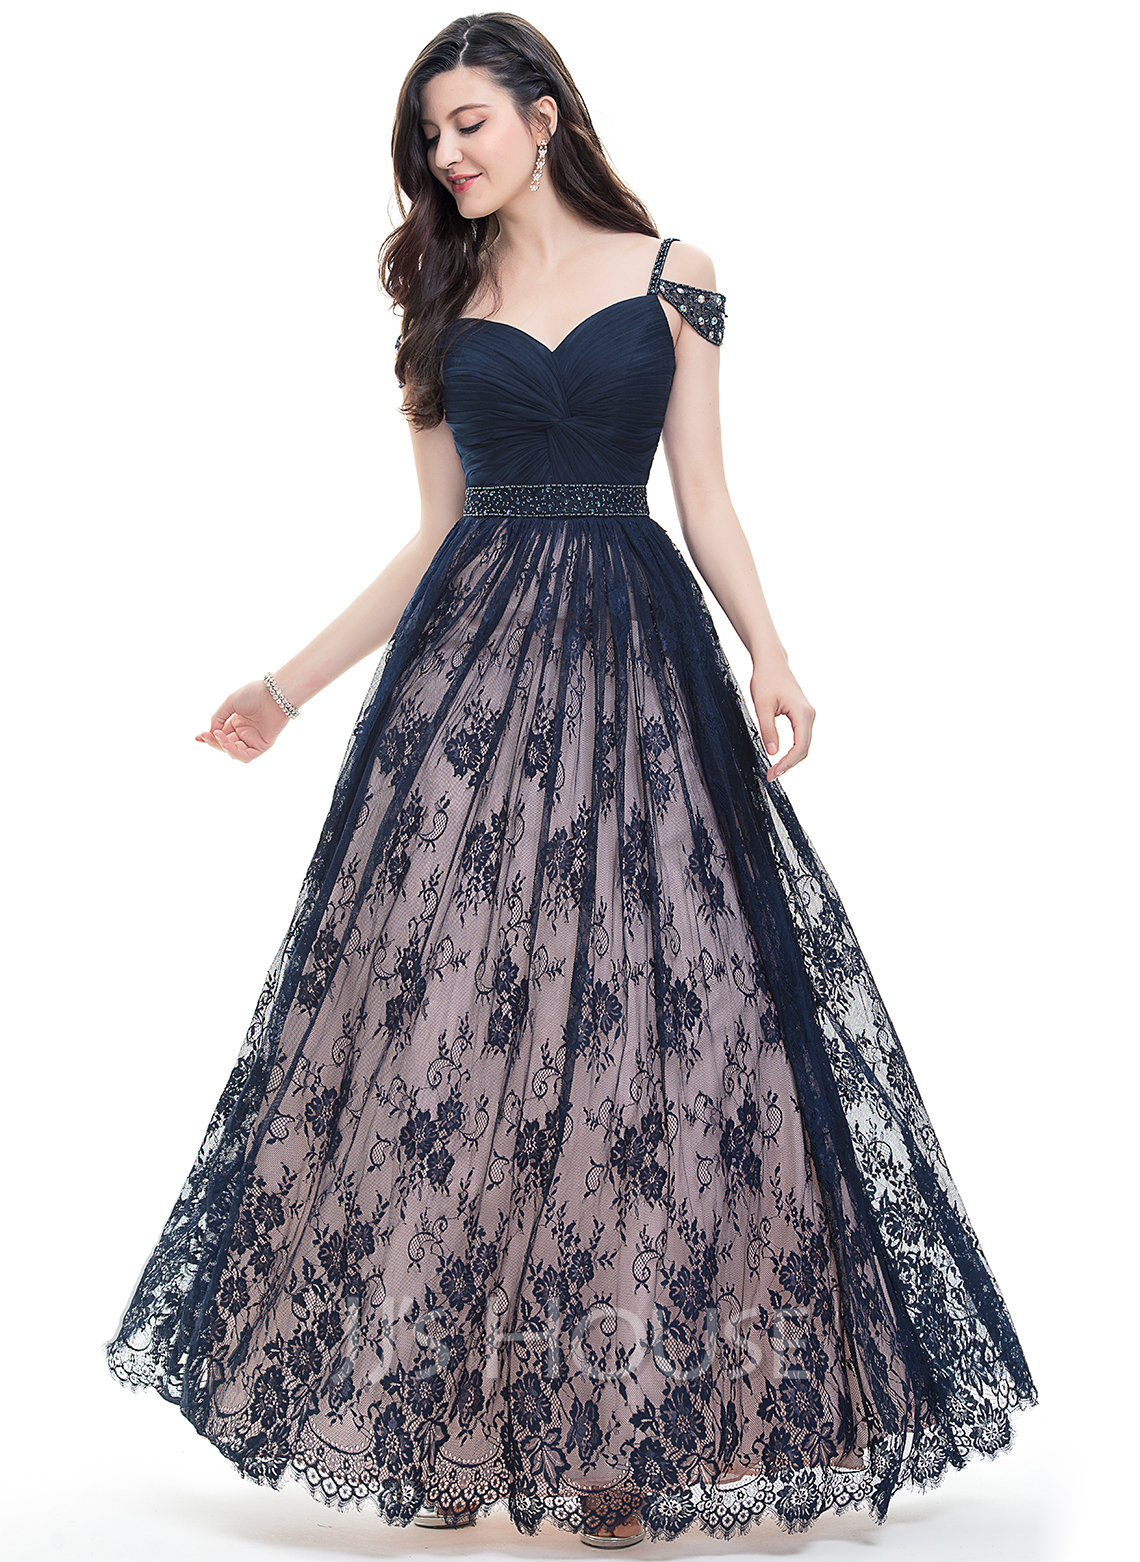 5c31e6fccdd Ball-Gown Sweetheart Floor-Length Lace Prom Dresses With Ruffle Beading  Sequins. Loading zoom